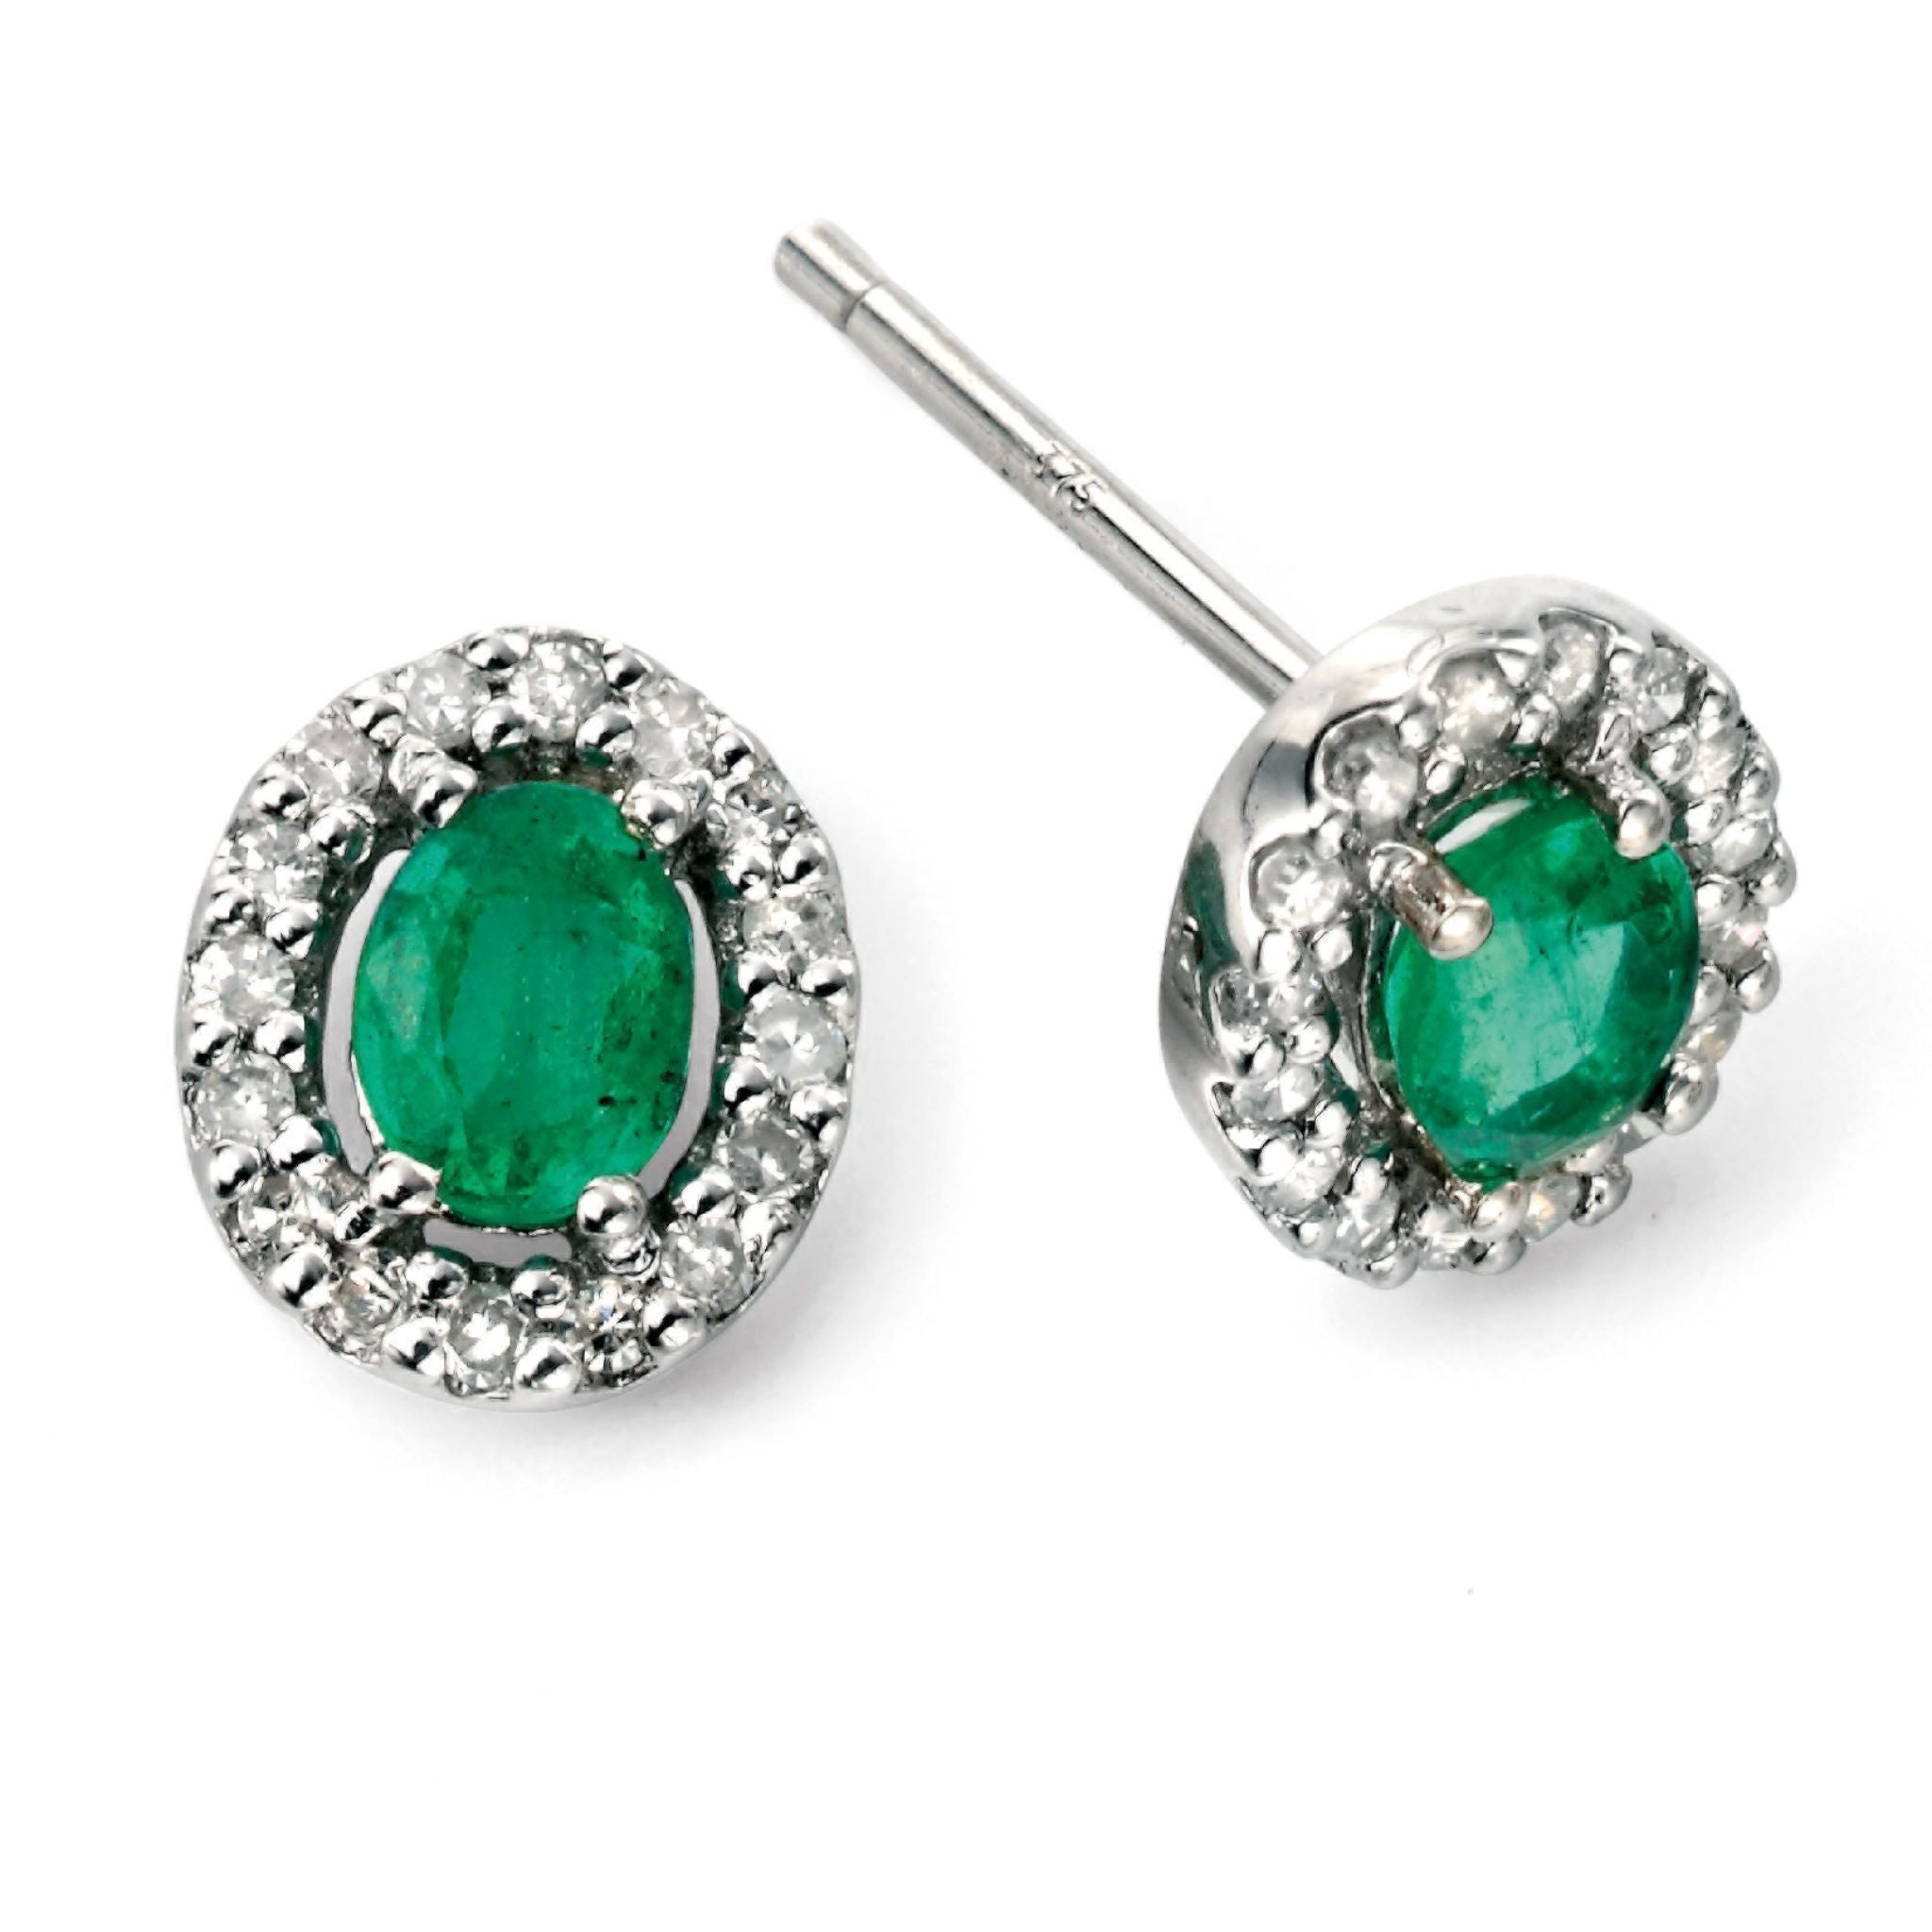 9ct White Gold Emerald & Diamond Stud Earrings